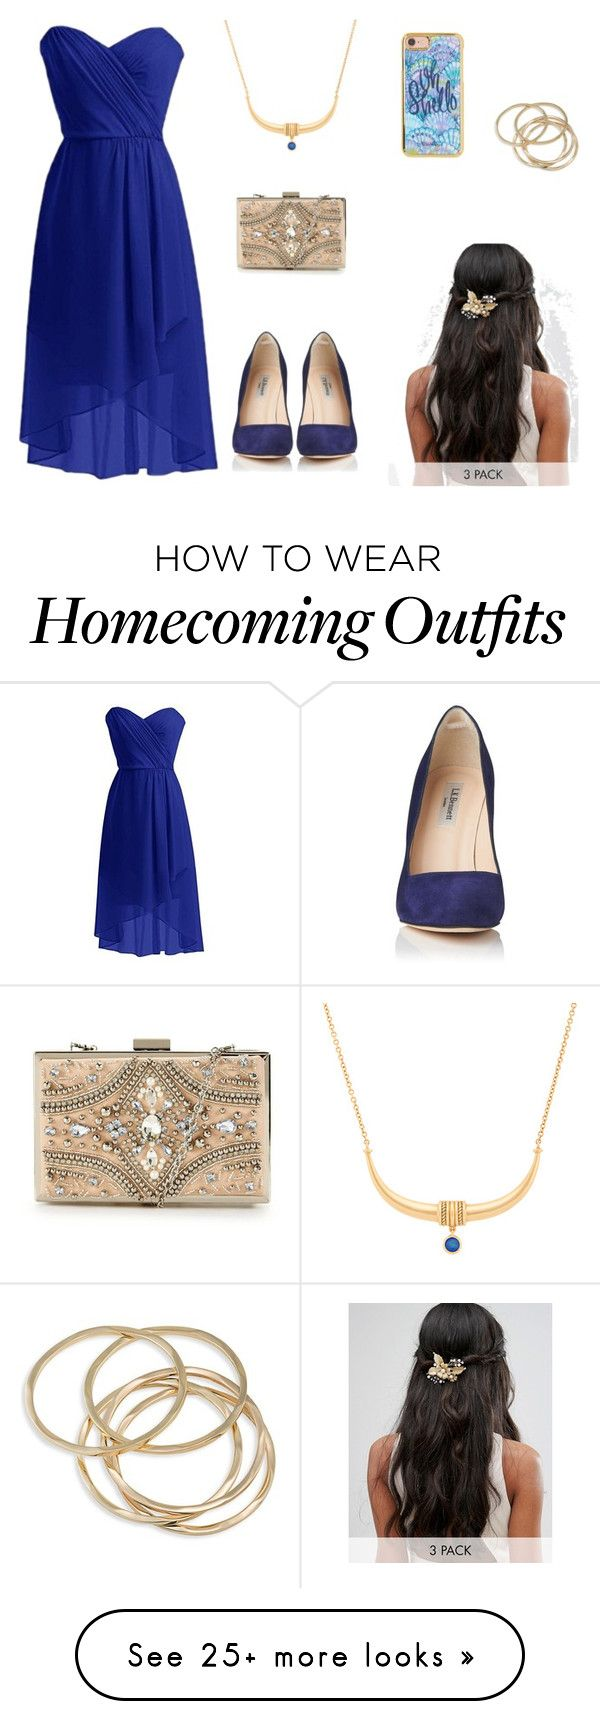 """Untitled #58"" by zazaza23 on Polyvore featuring AYA, L.K.Bennett, Forever Unique, Lilly Pulitzer, Her Curious Nature and ABS by Allen Schwartz"